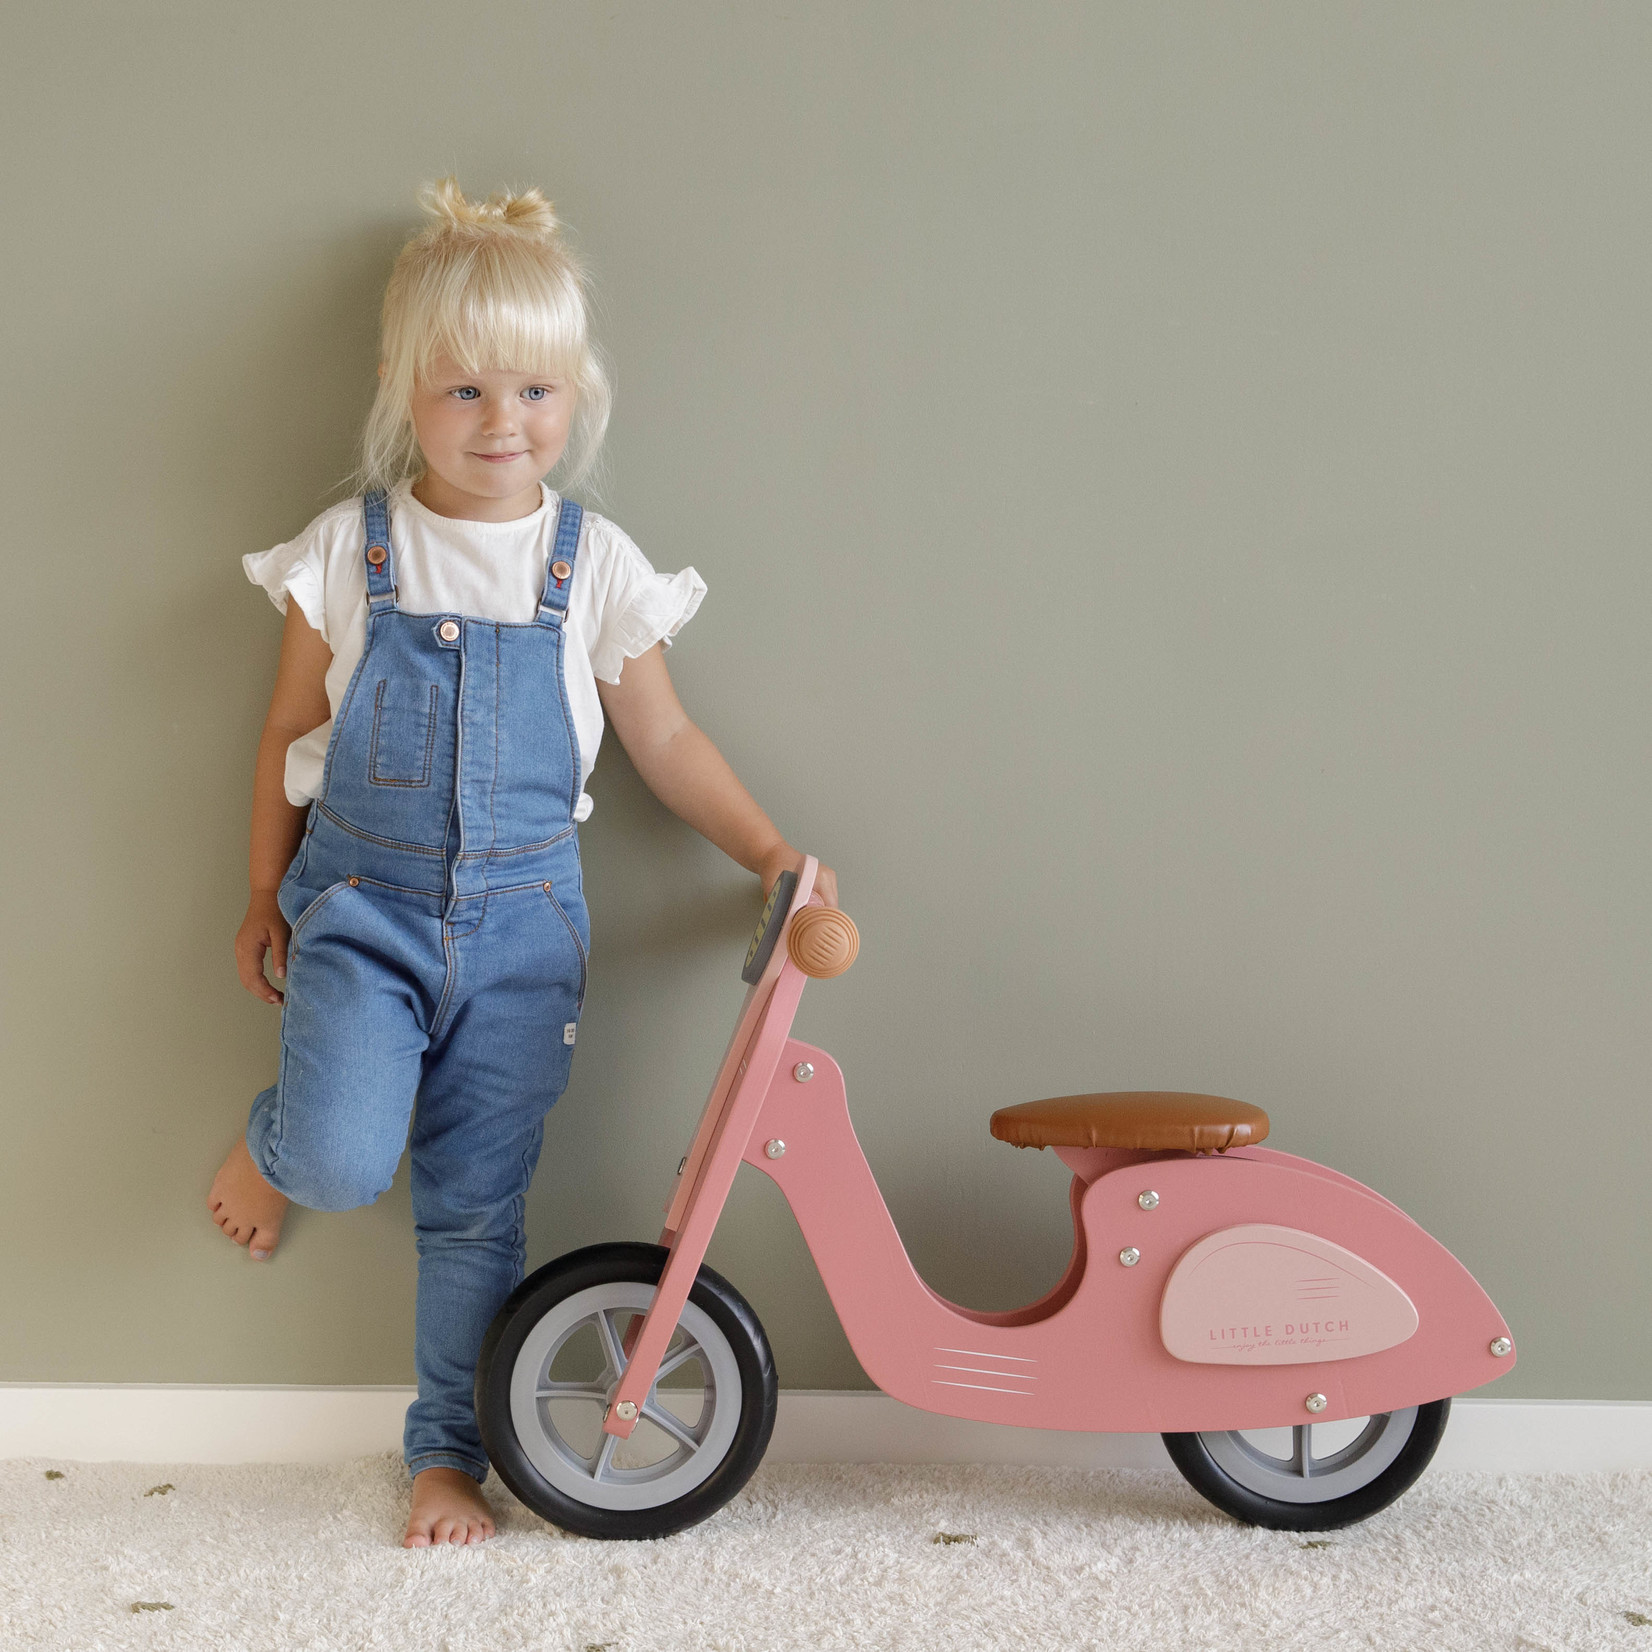 Little Dutch Loopscooter Pink